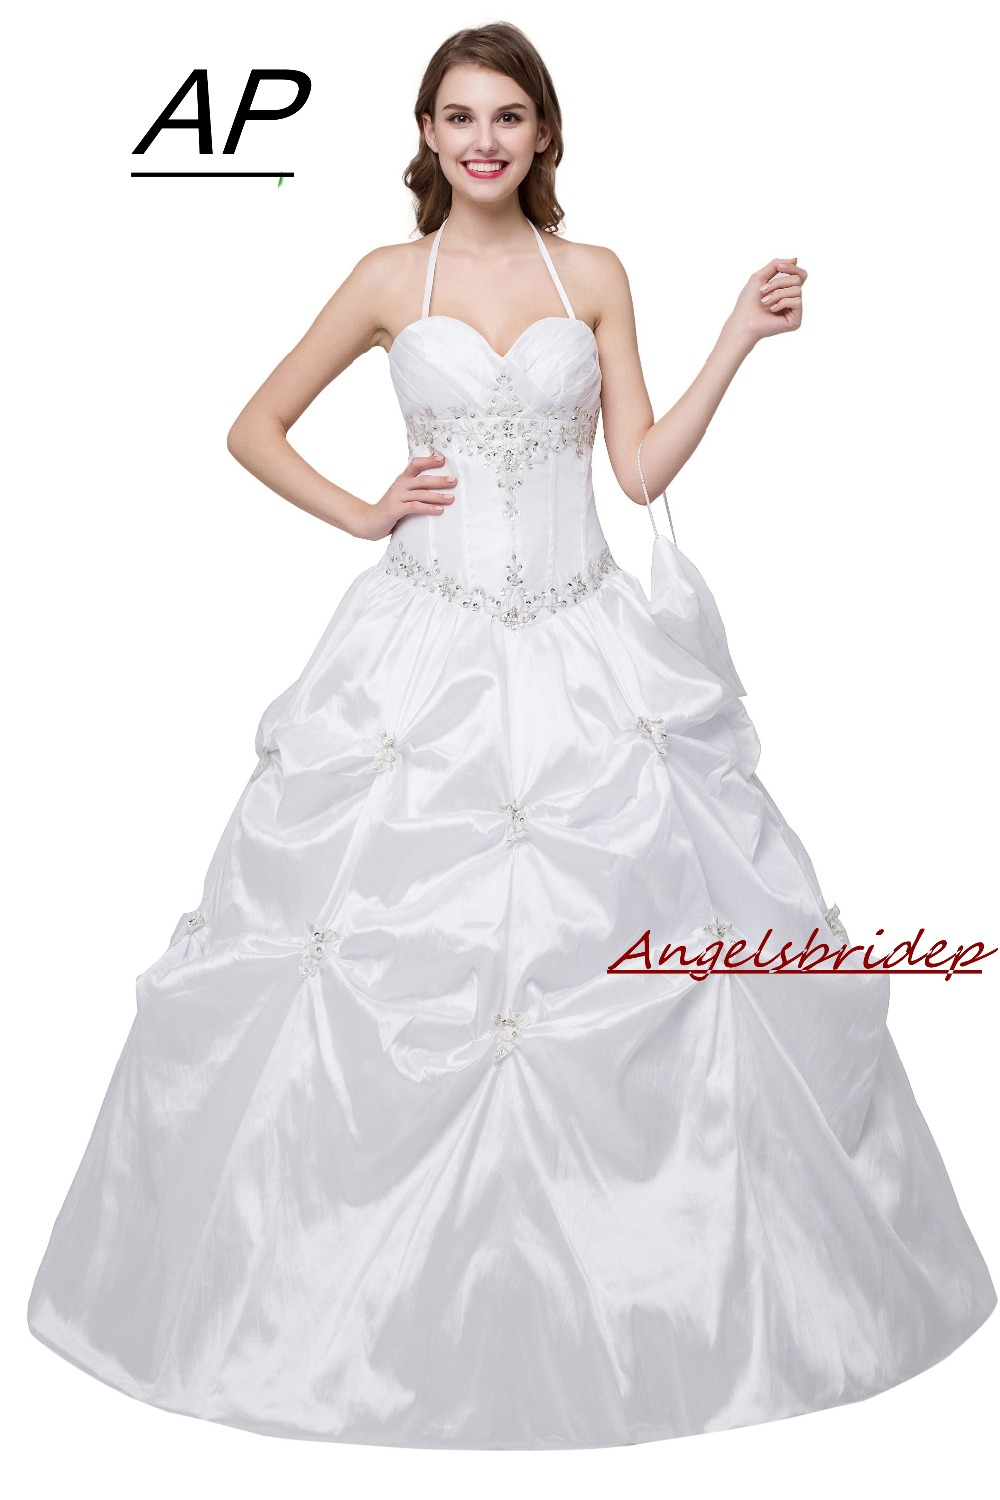 ANGELSBRIDEP Quinceanera Dresses For 15 Party Formal Halter White Debutante Gown Embroidery Floor Length Vestidos De